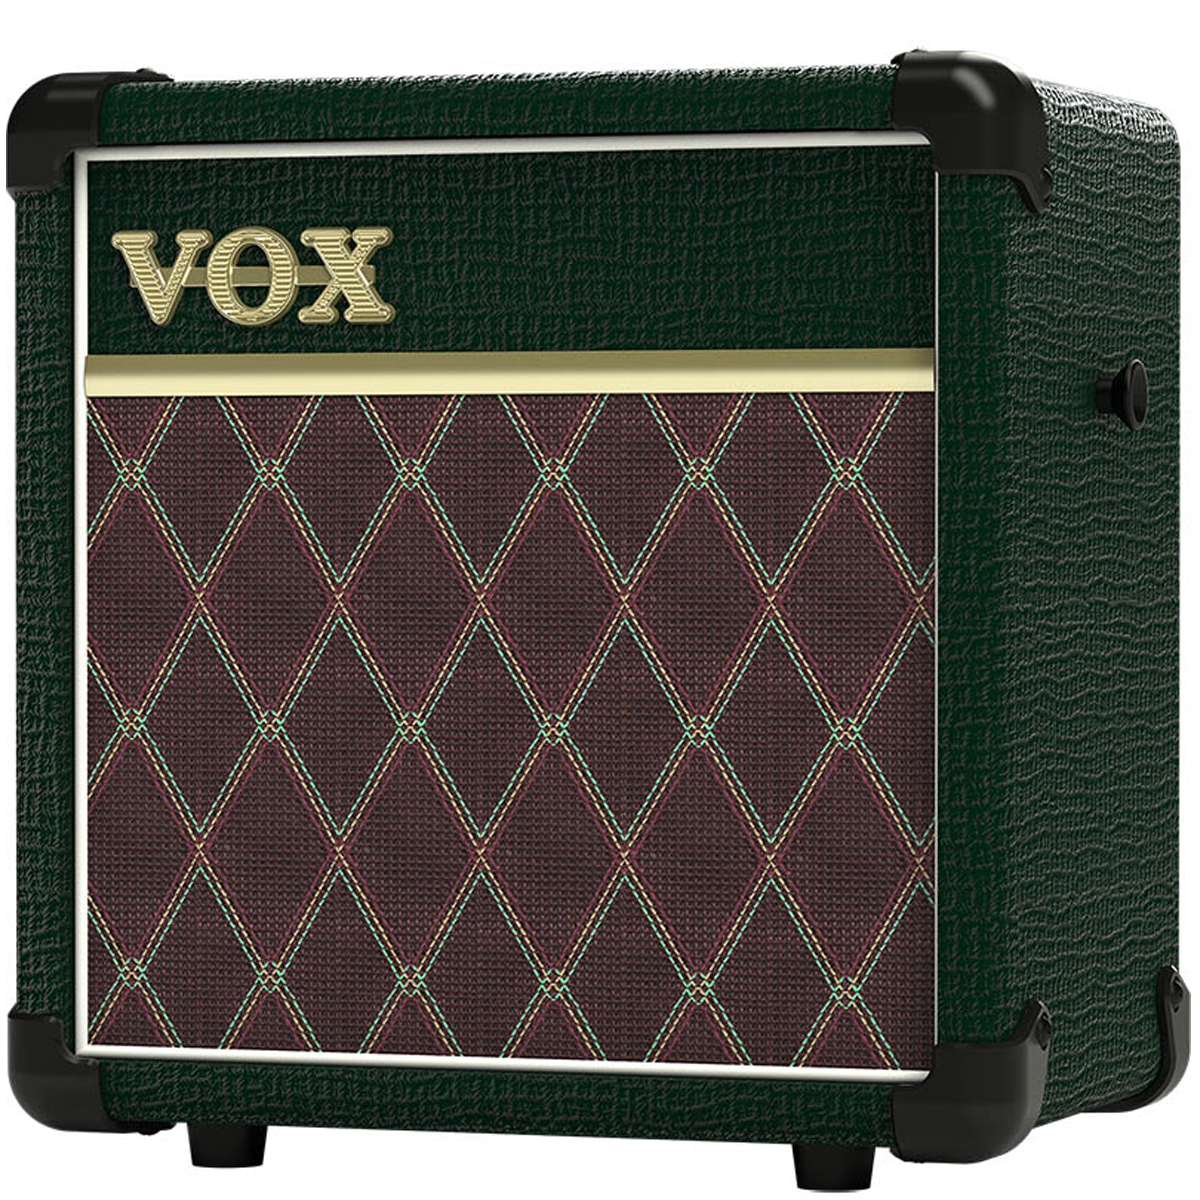 Vox MINI5-RM-BRG2 - 5-watt mains/battery modelling amp with effects and rhythms - Vintage Guitar Boutique